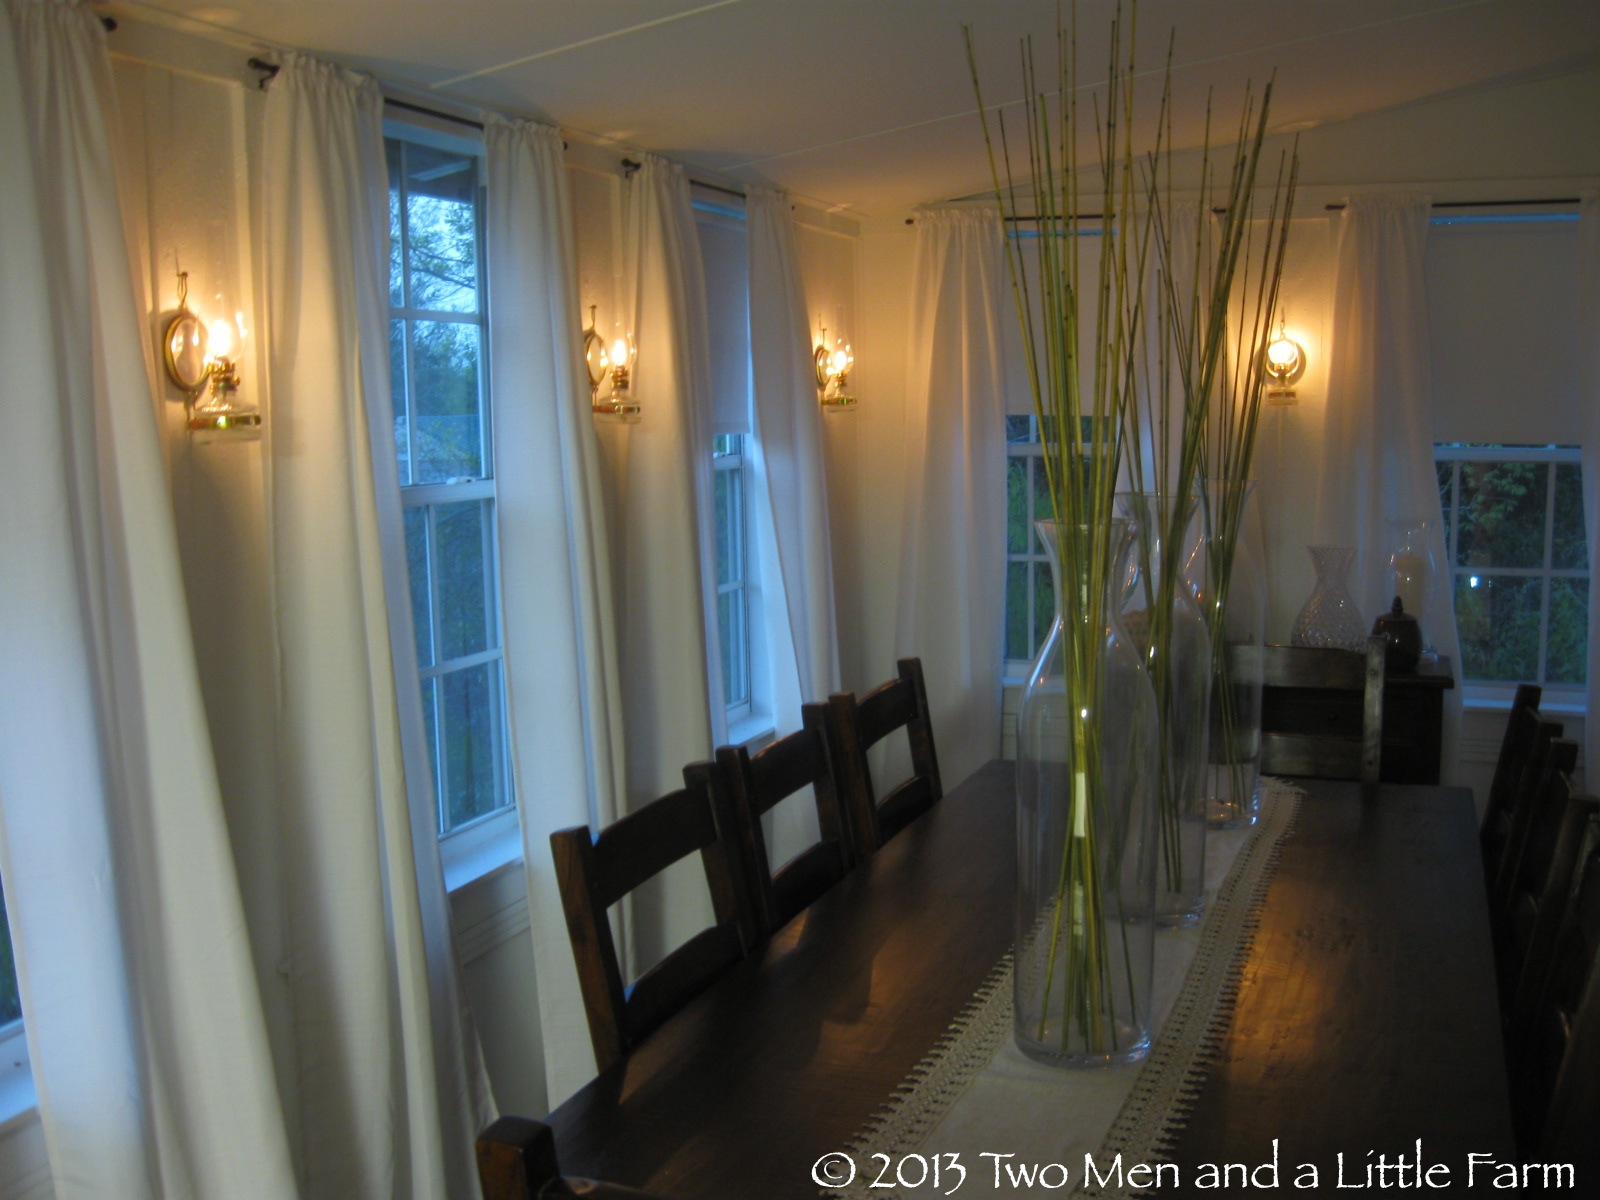 Two Men and a Little Farm: DINING ROOM WALL OIL LAMPS